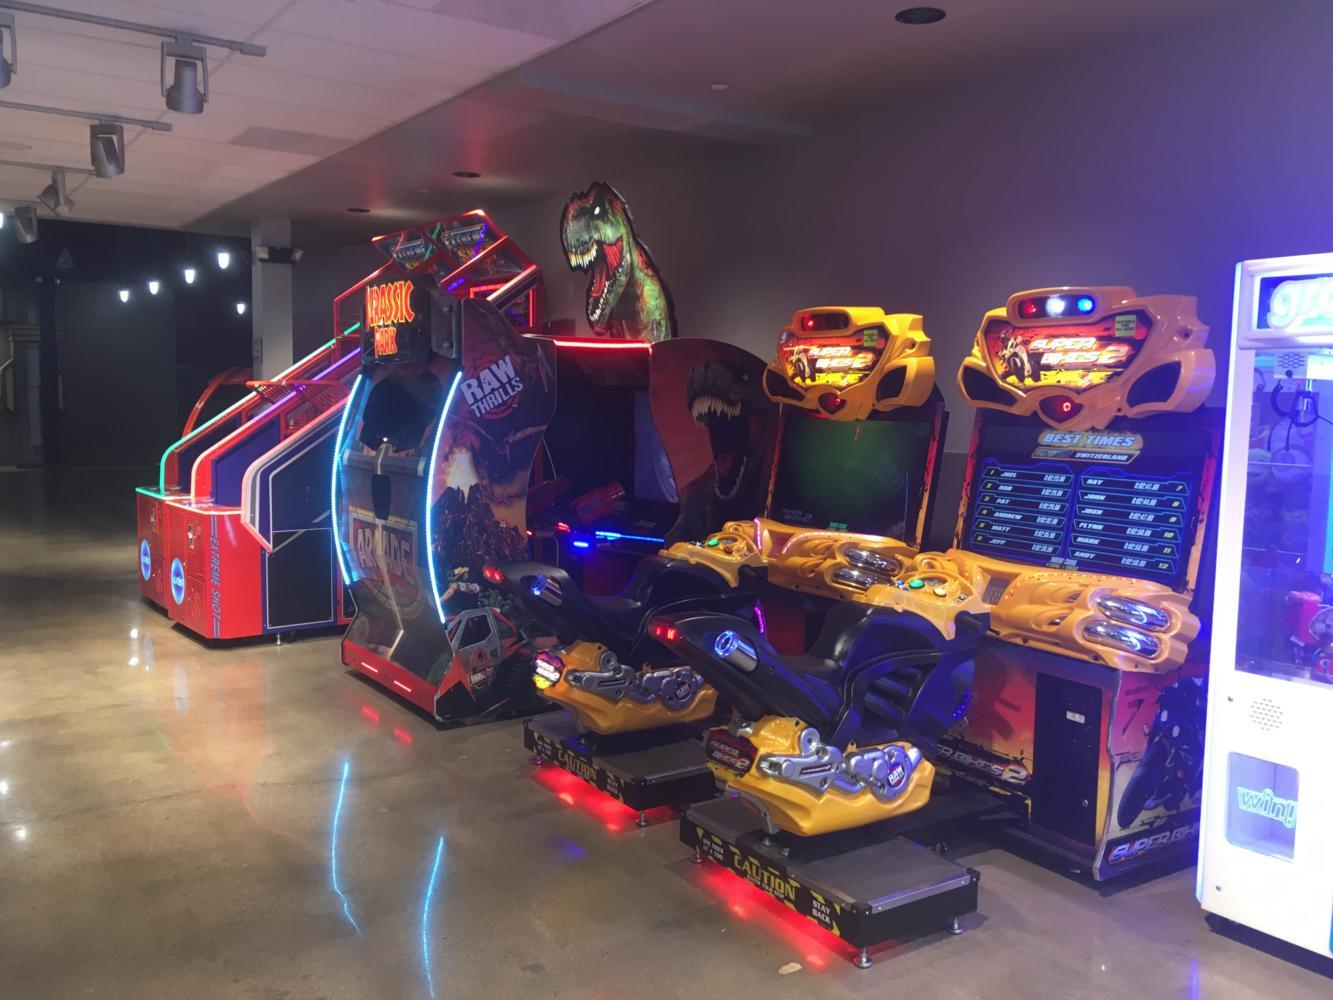 Laser+Quest+also+offers+various+arcade+games.+